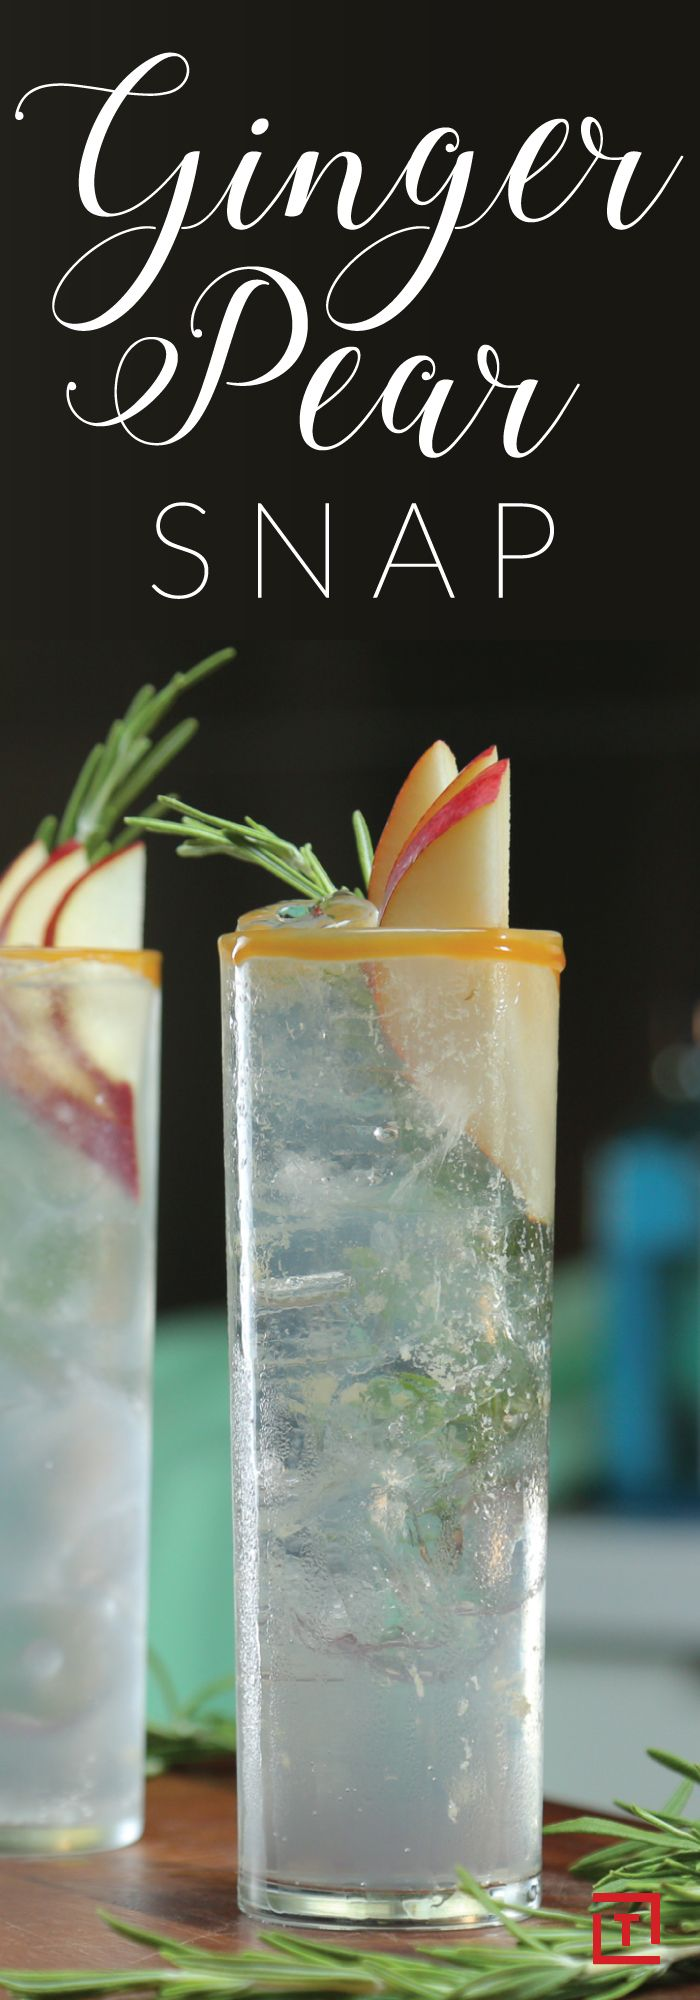 Snap out of summer and into fall with Boulder Locavore's ginger pear snap cocktail made with pear vodka, ginger liqueur, pear soda, lemon juice, and rosemary. Rim with caramel and garnish with a slice of pear and a sprig of rosemary for a refreshing nod to fall.